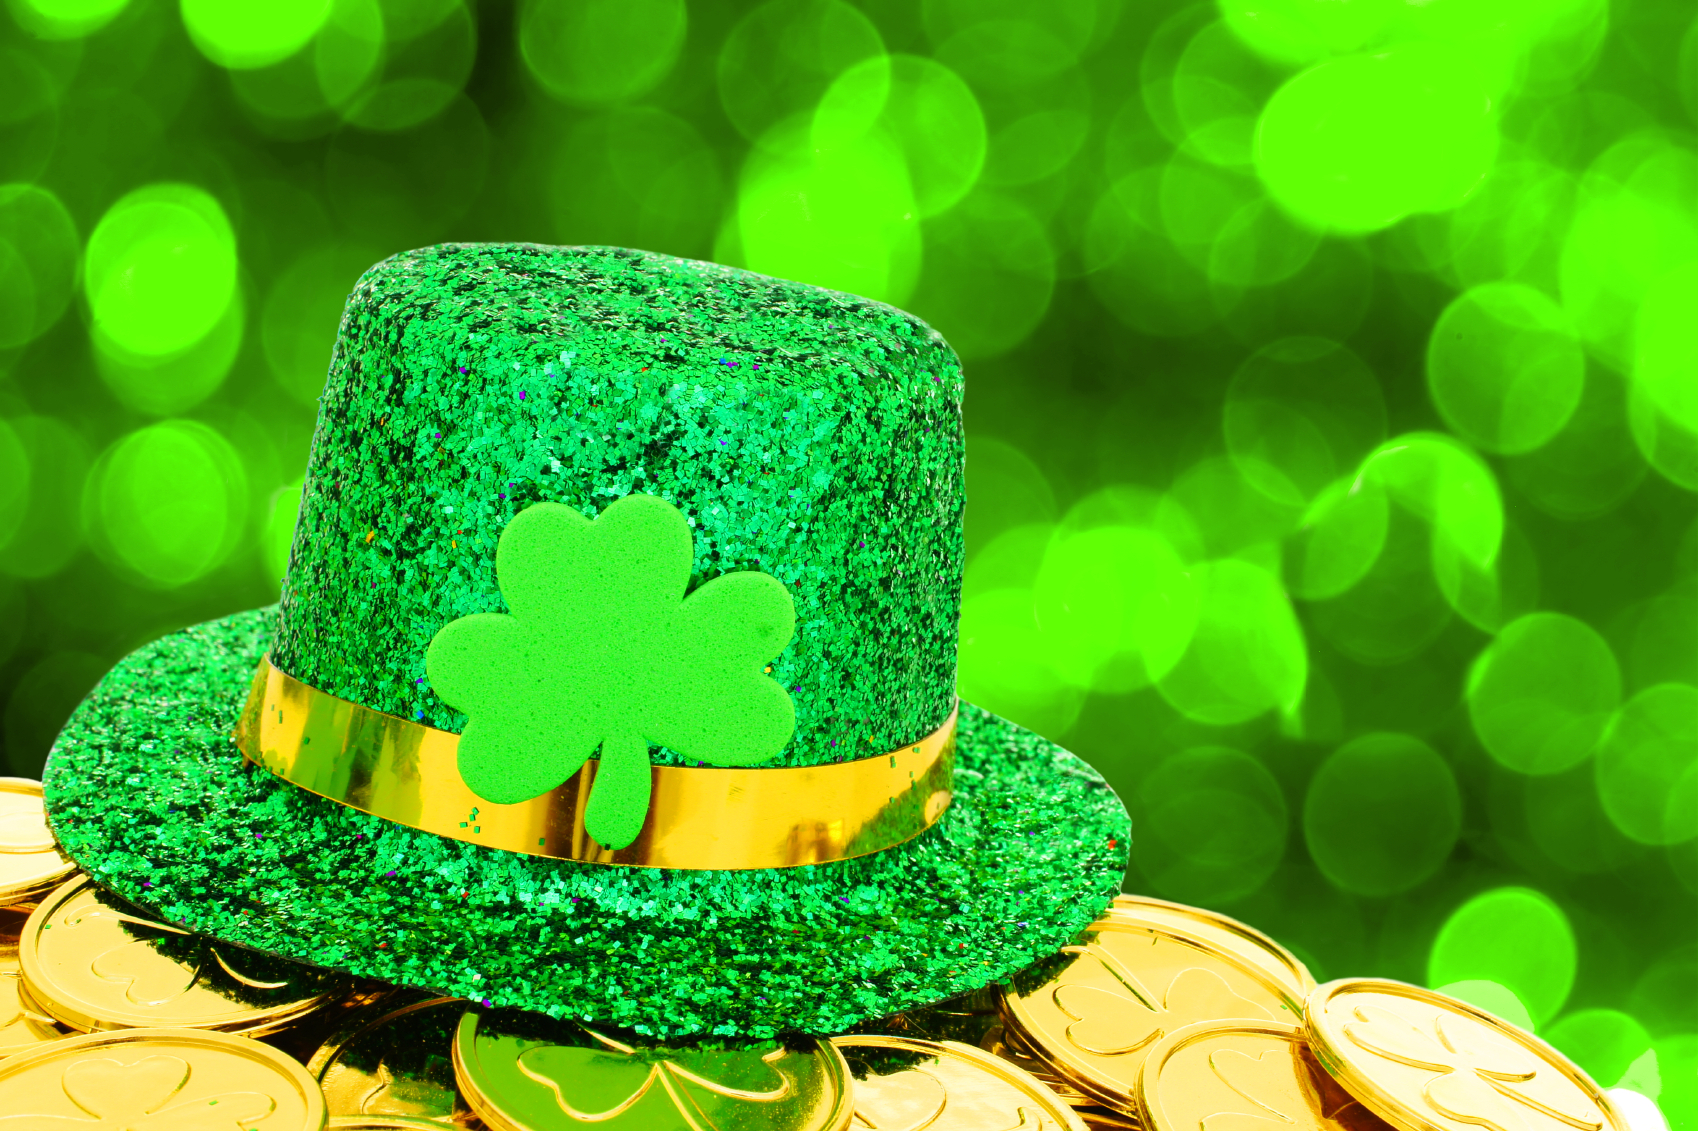 St. Patrick's Day Drinking: Are You Putting Your Teeth at Risk?